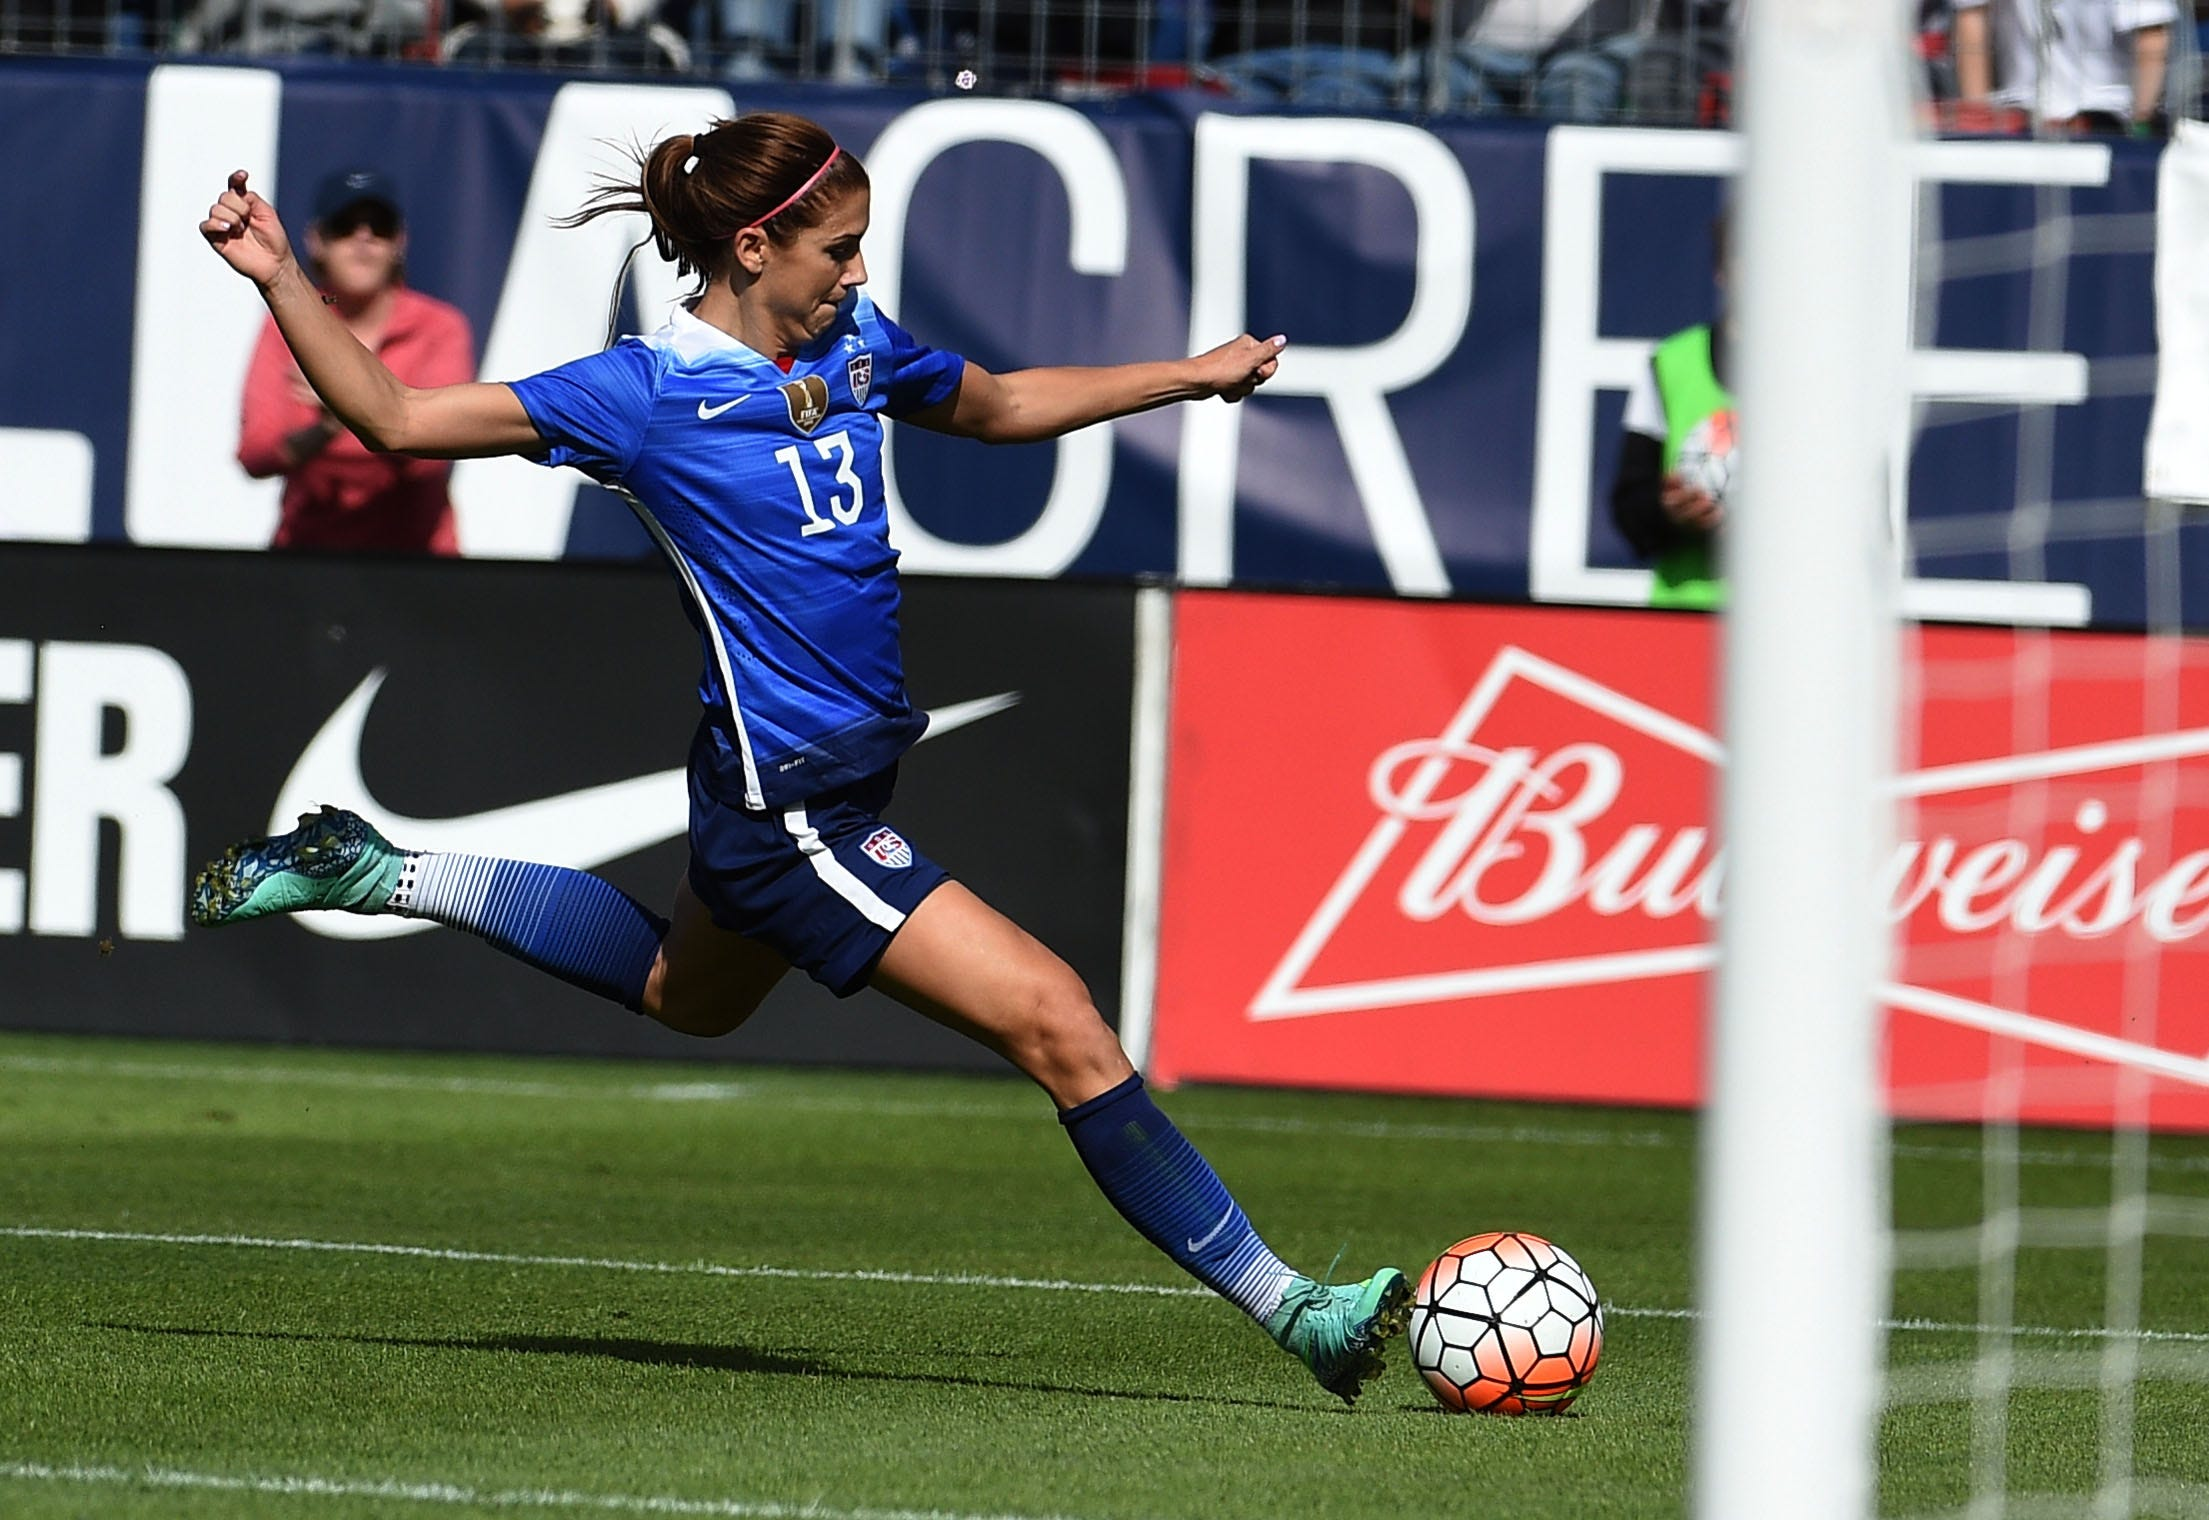 USA's Alex Morgan, 13, takes a shot on goal against